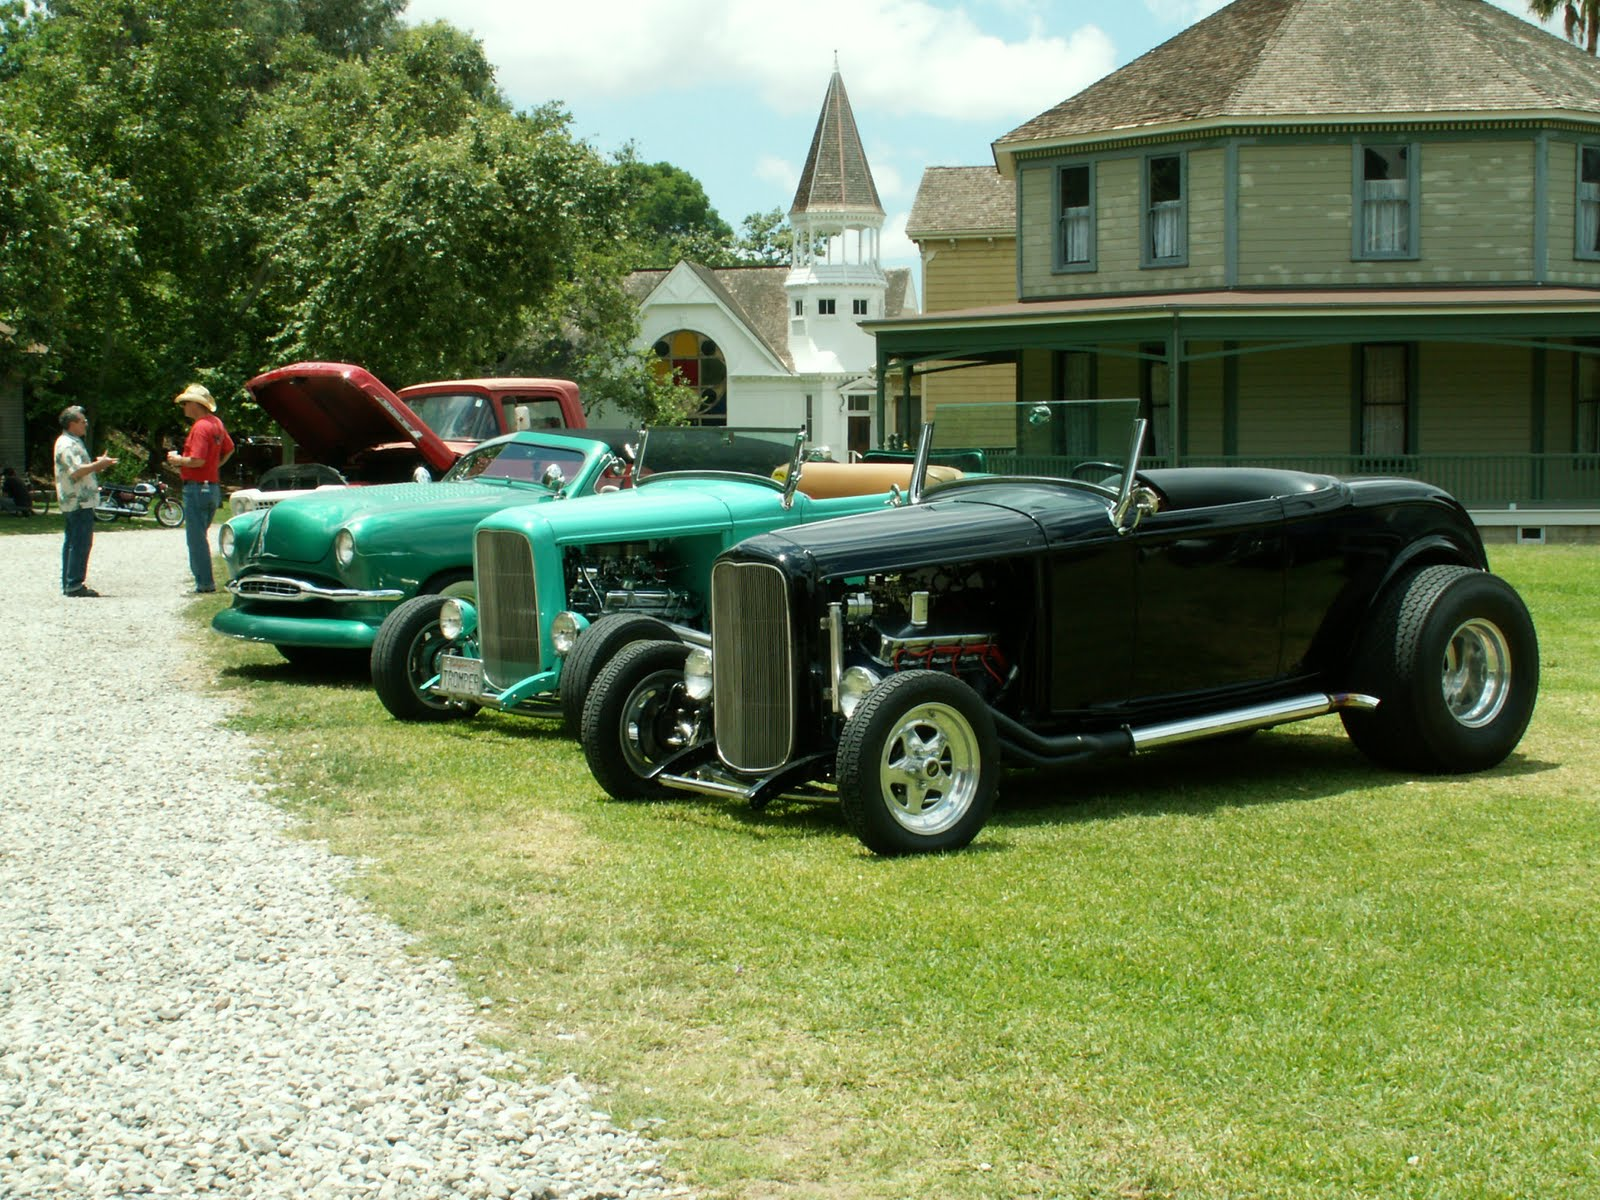 Conroe Swap Meet >> 30TH ANNUAL HERITAGE CLASSIC ANTIQUE CAR SHOW | ANTIQUES CENTER